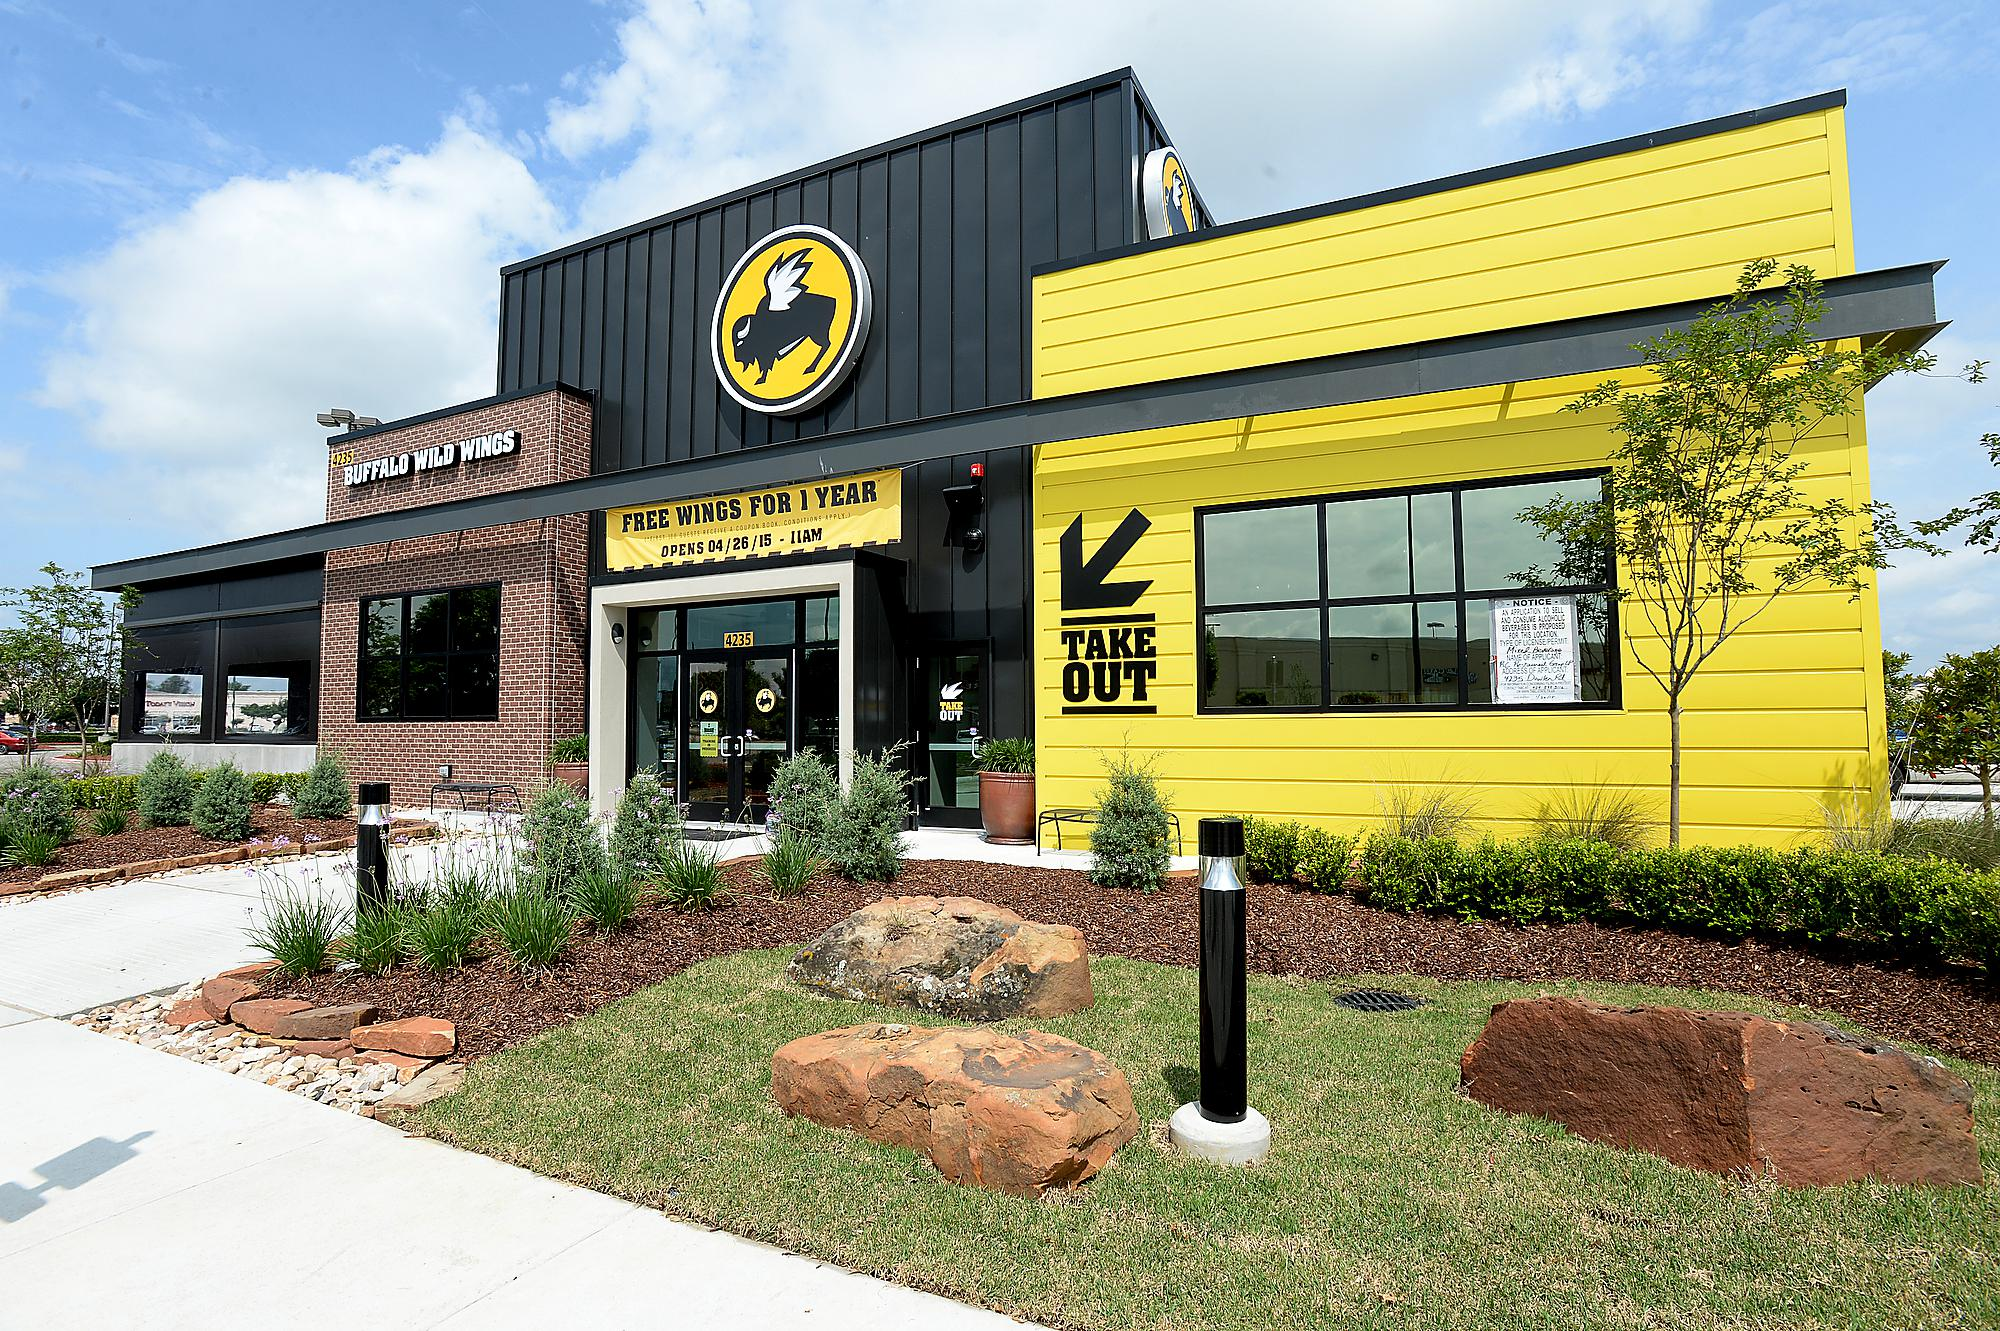 Buffalo Wild Wings, facing fallout from foul Astros tweet, shows perils of social media